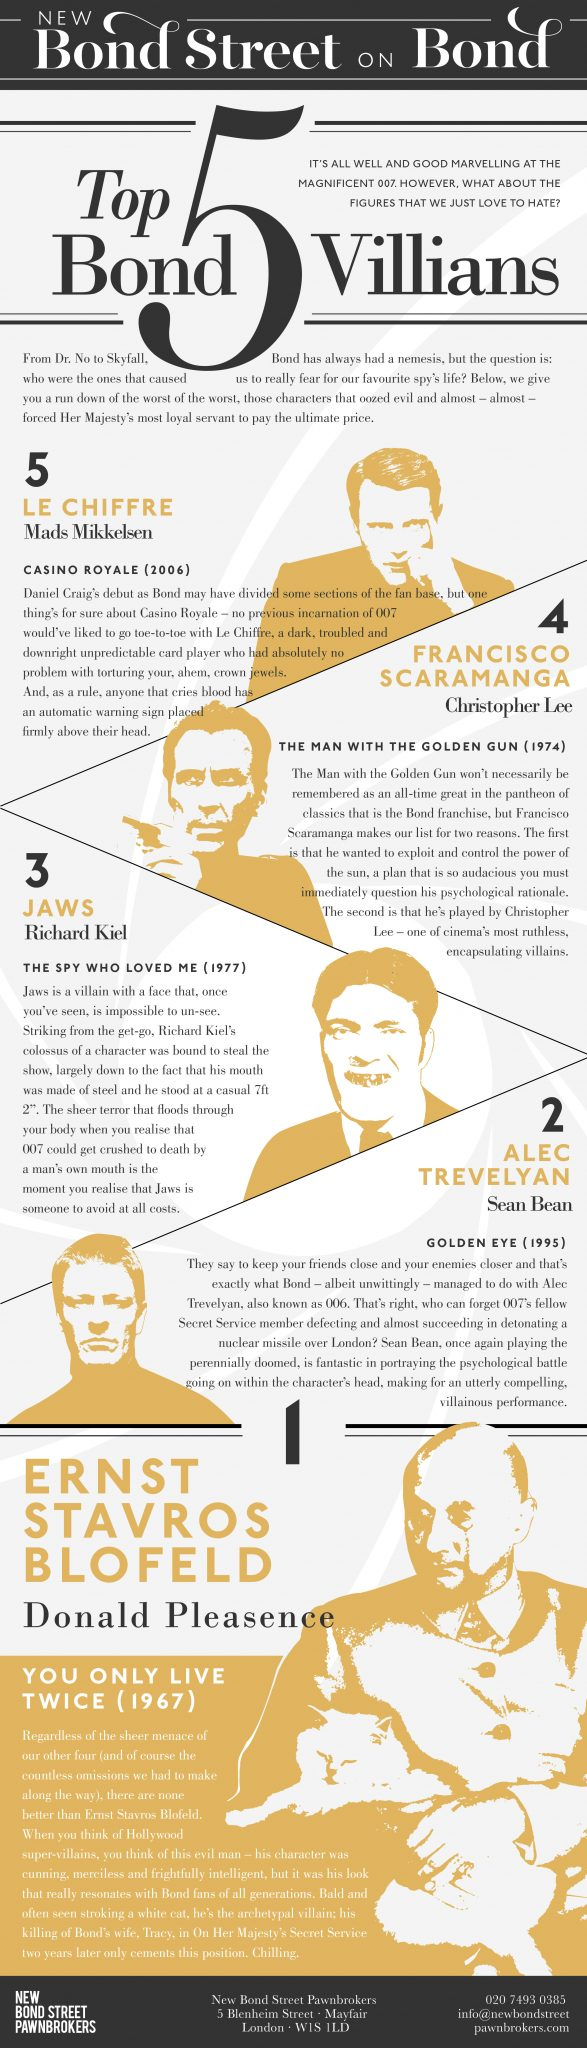 Top 5 James Bond Villains - Infographic